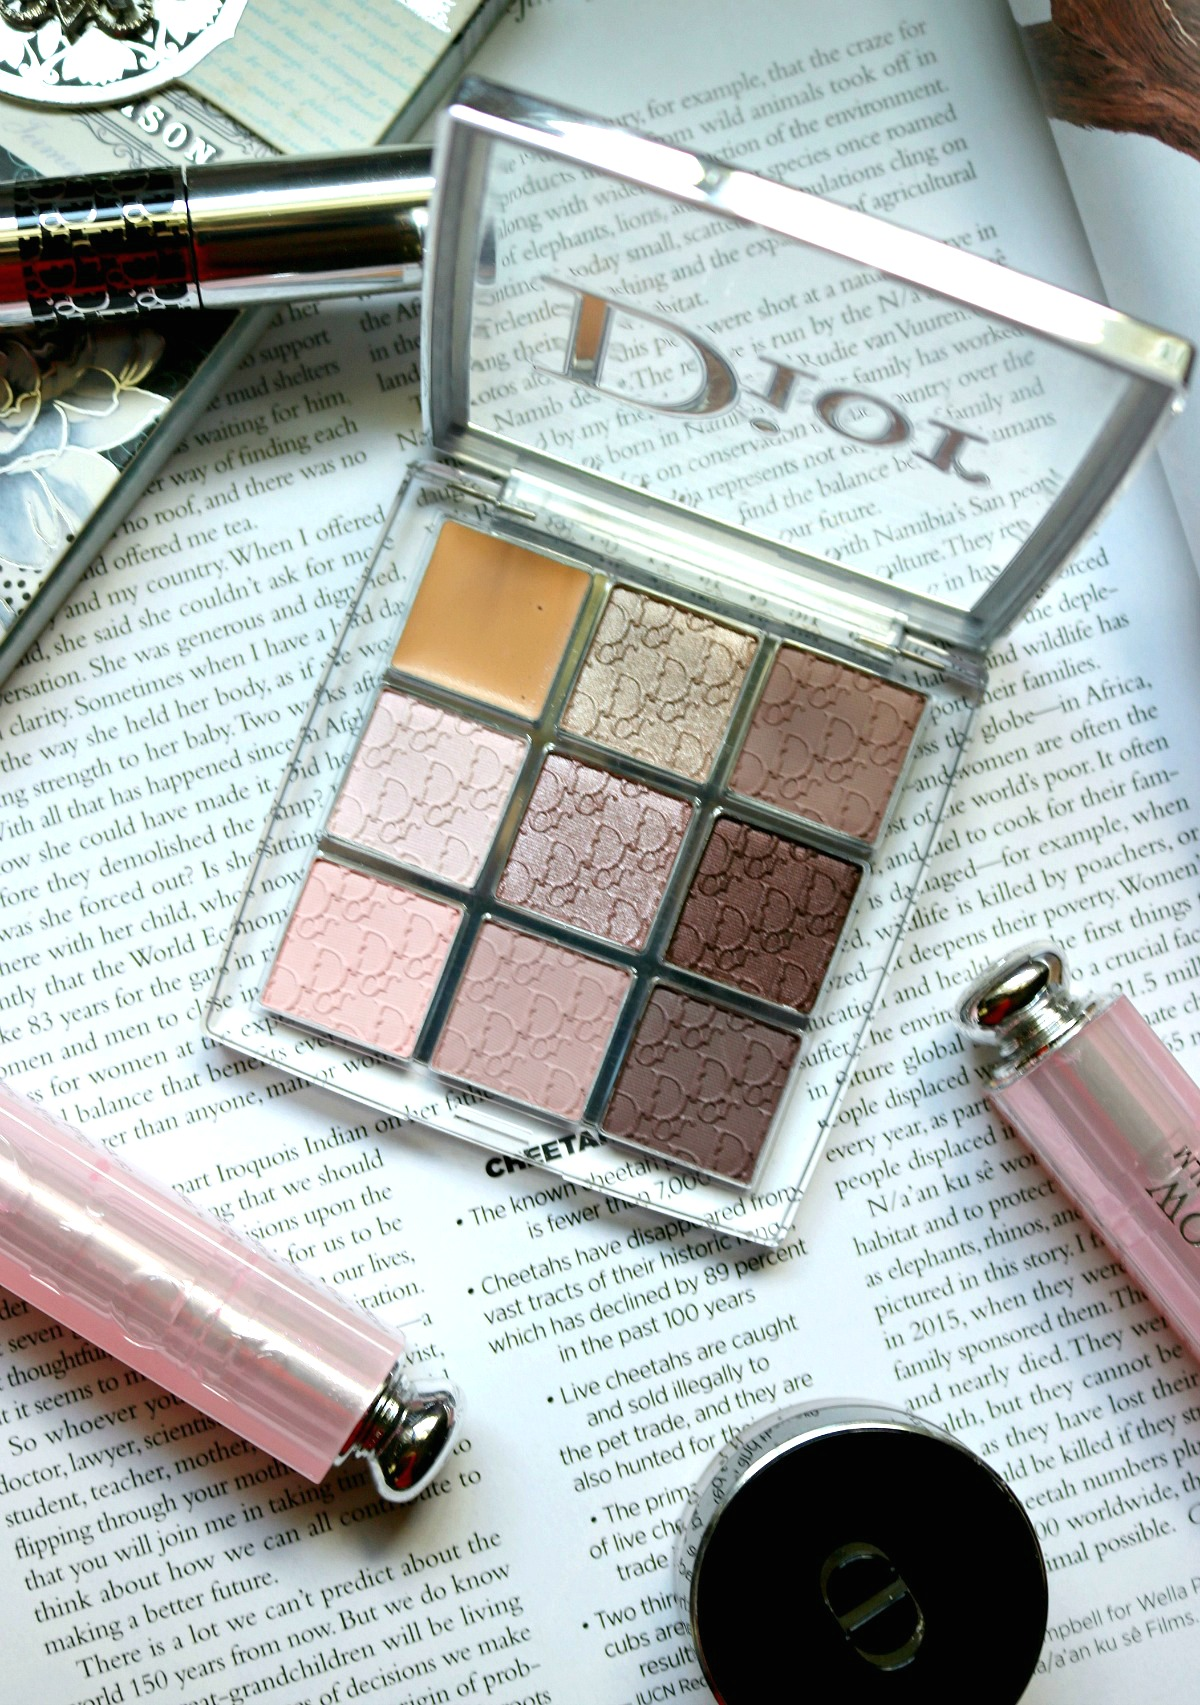 Most Popular Blog Posts of 2018 I Dior Backstage Eyeshadow Palette Review (Cool Tone) I DreaminLace.com #Dior #DiorMakeup #LuxuryMakeup